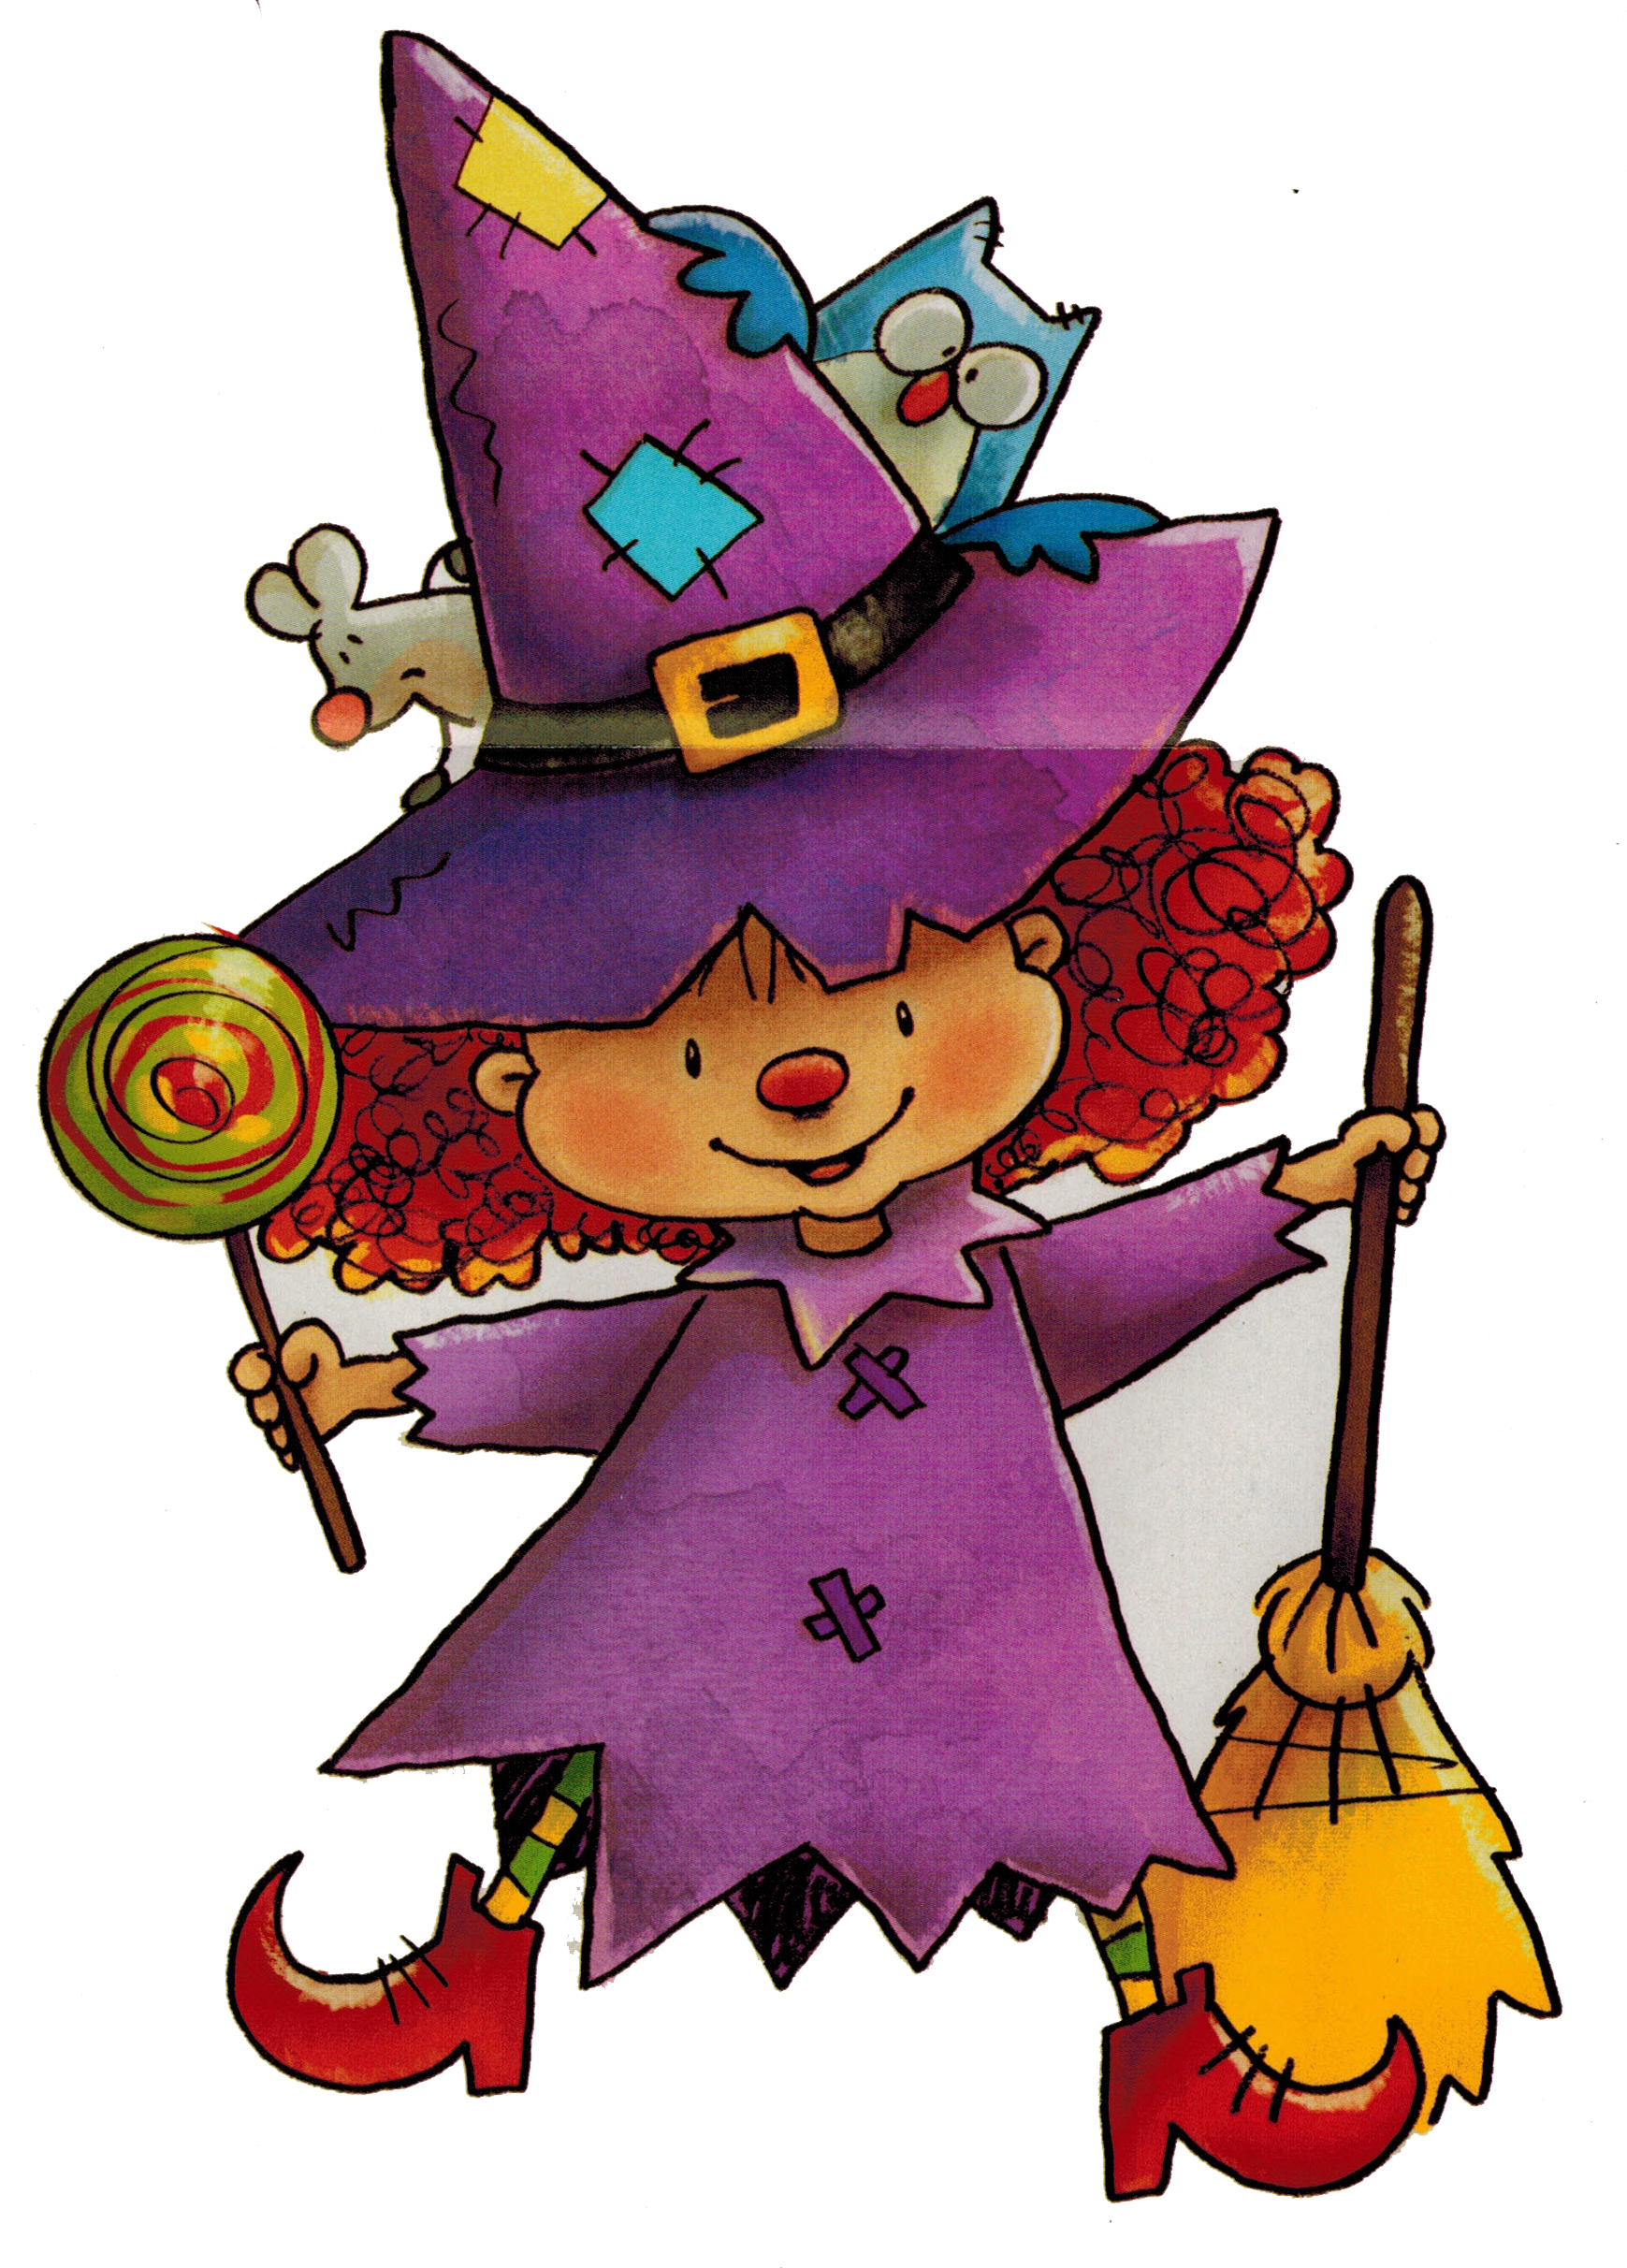 Pin by Dede paper on paperca/printableHalloween/autumn 4